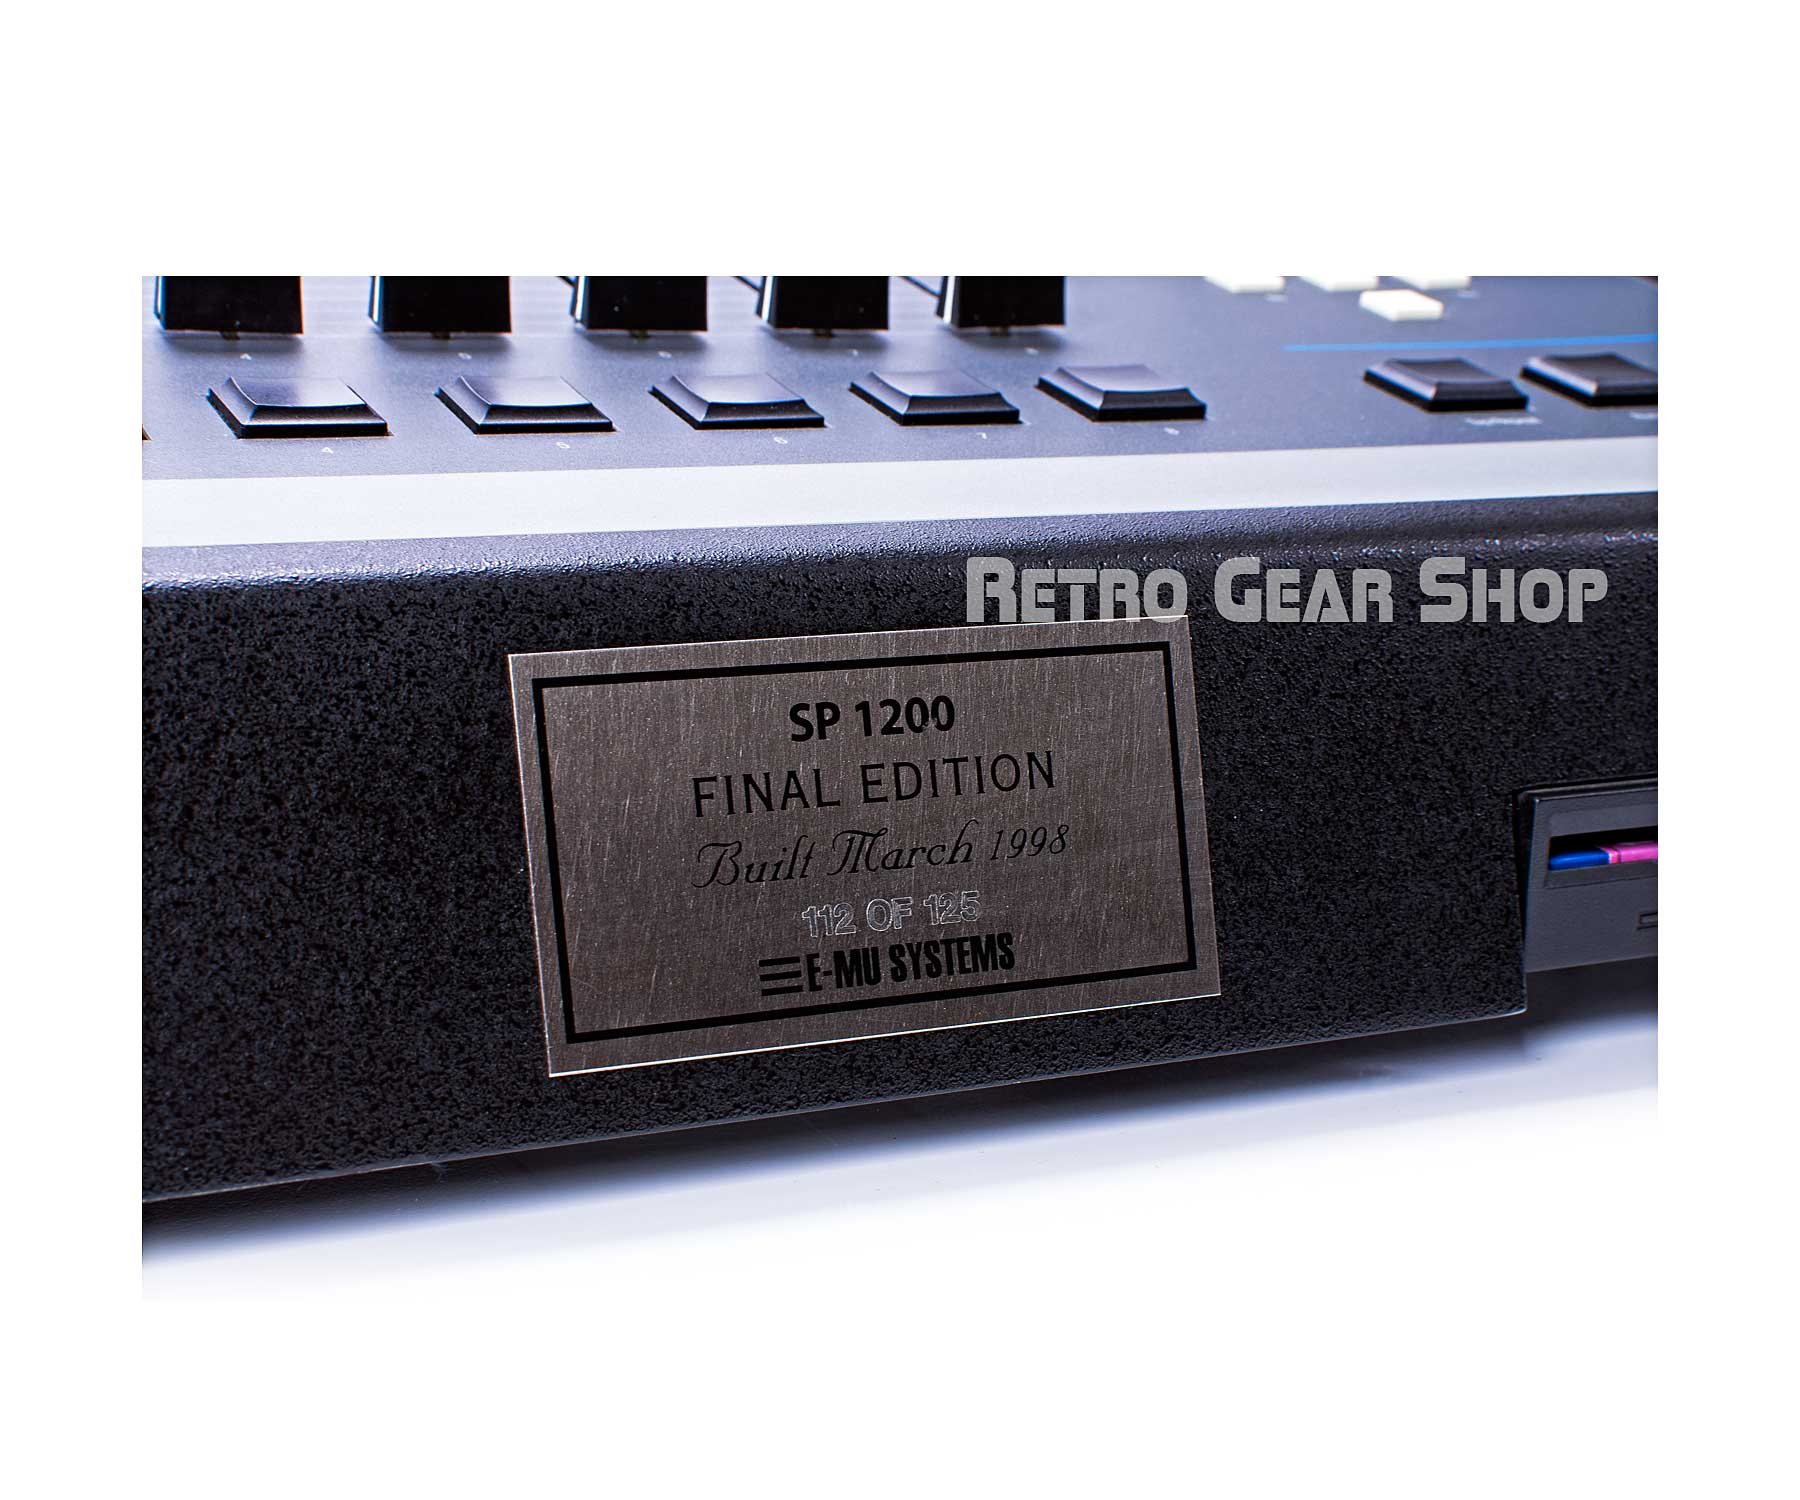 E-Mu SP-1200 Final Edition #112 Plaque